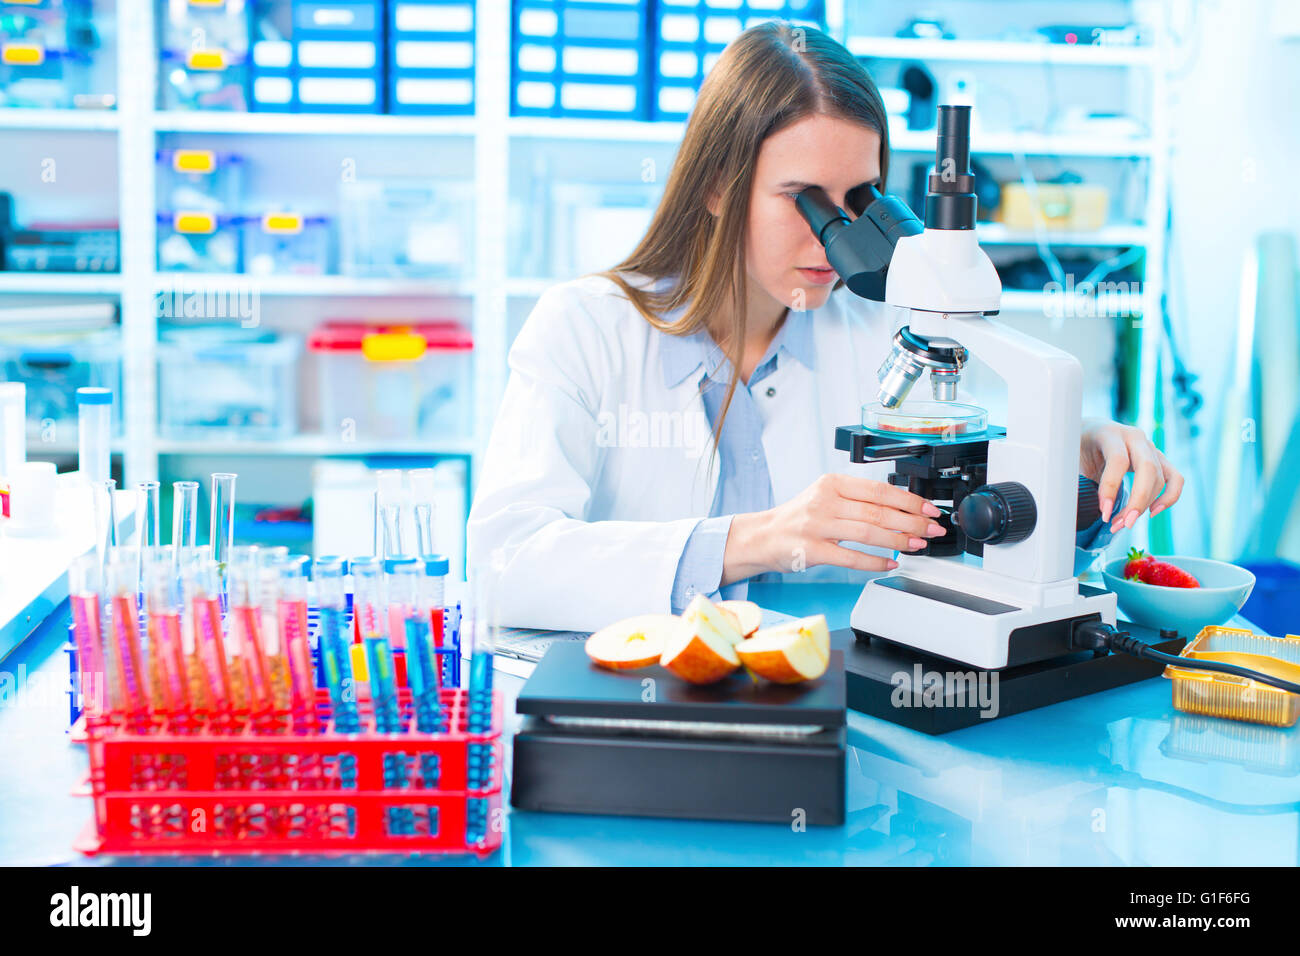 MODEL RELEASED. Female scientist studying food samples under a microscope. - Stock Image